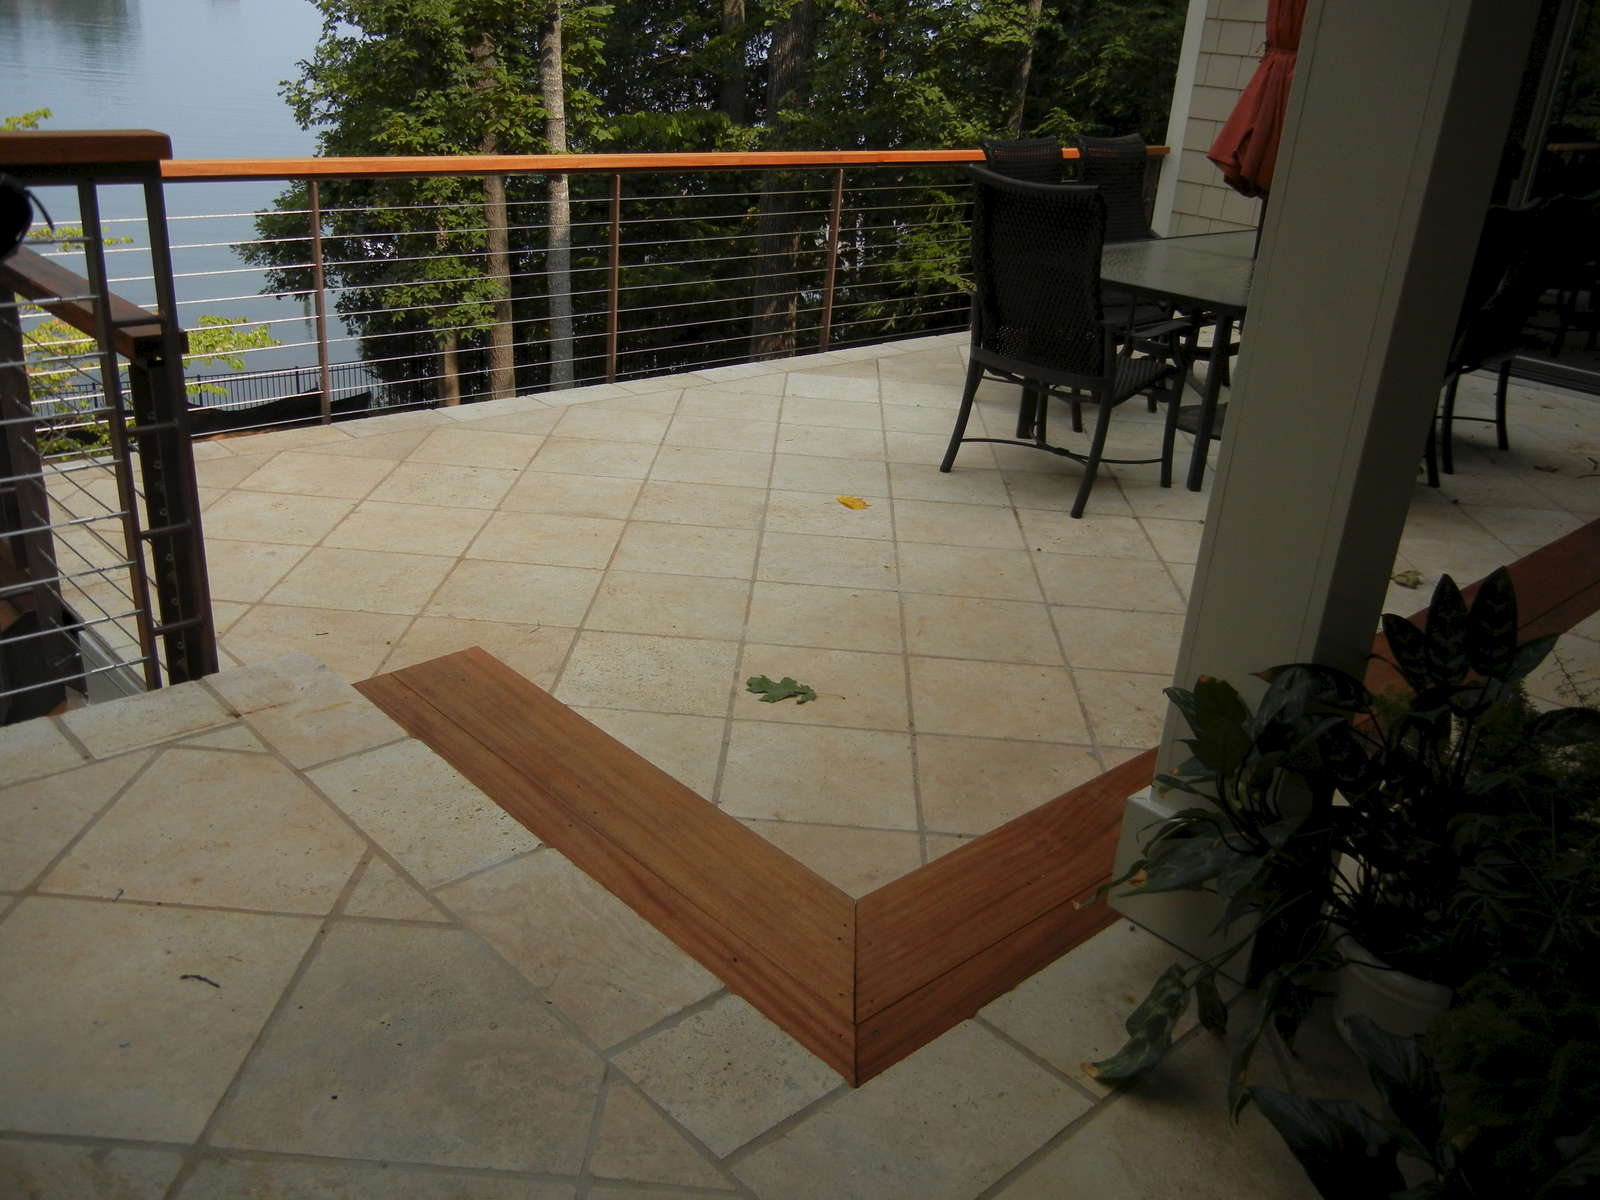 The project includes an urban outdoor living space that includes a sunken Travertine patio with cable rail. The railing helps open up the view and is asethetically appealing.